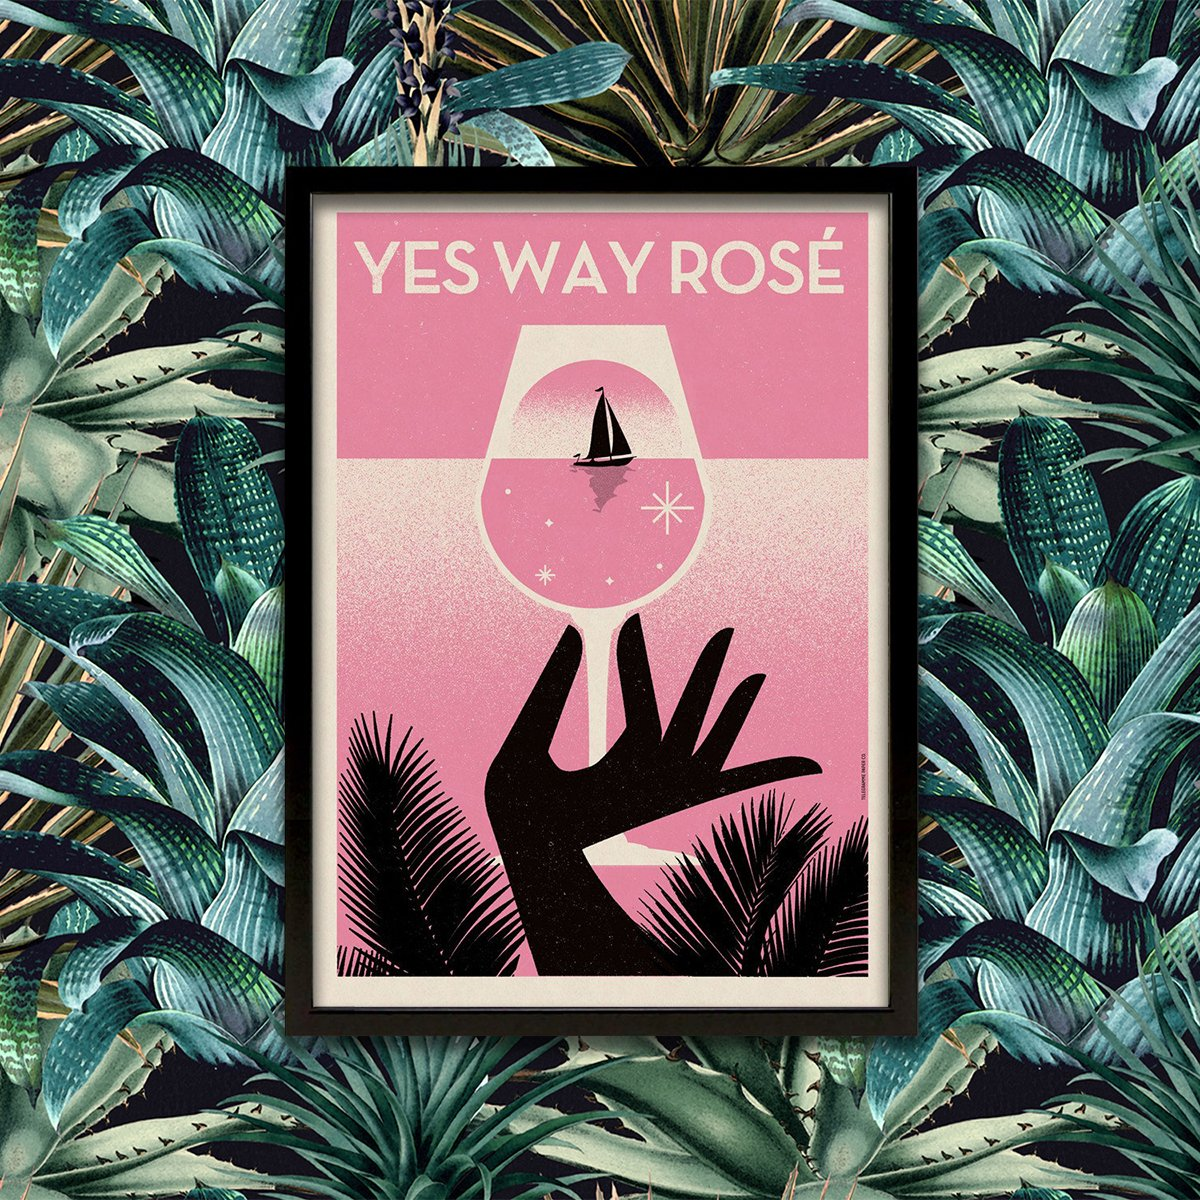 Telegramme Yes Way Rosé Limited Edition A2 Screen Print